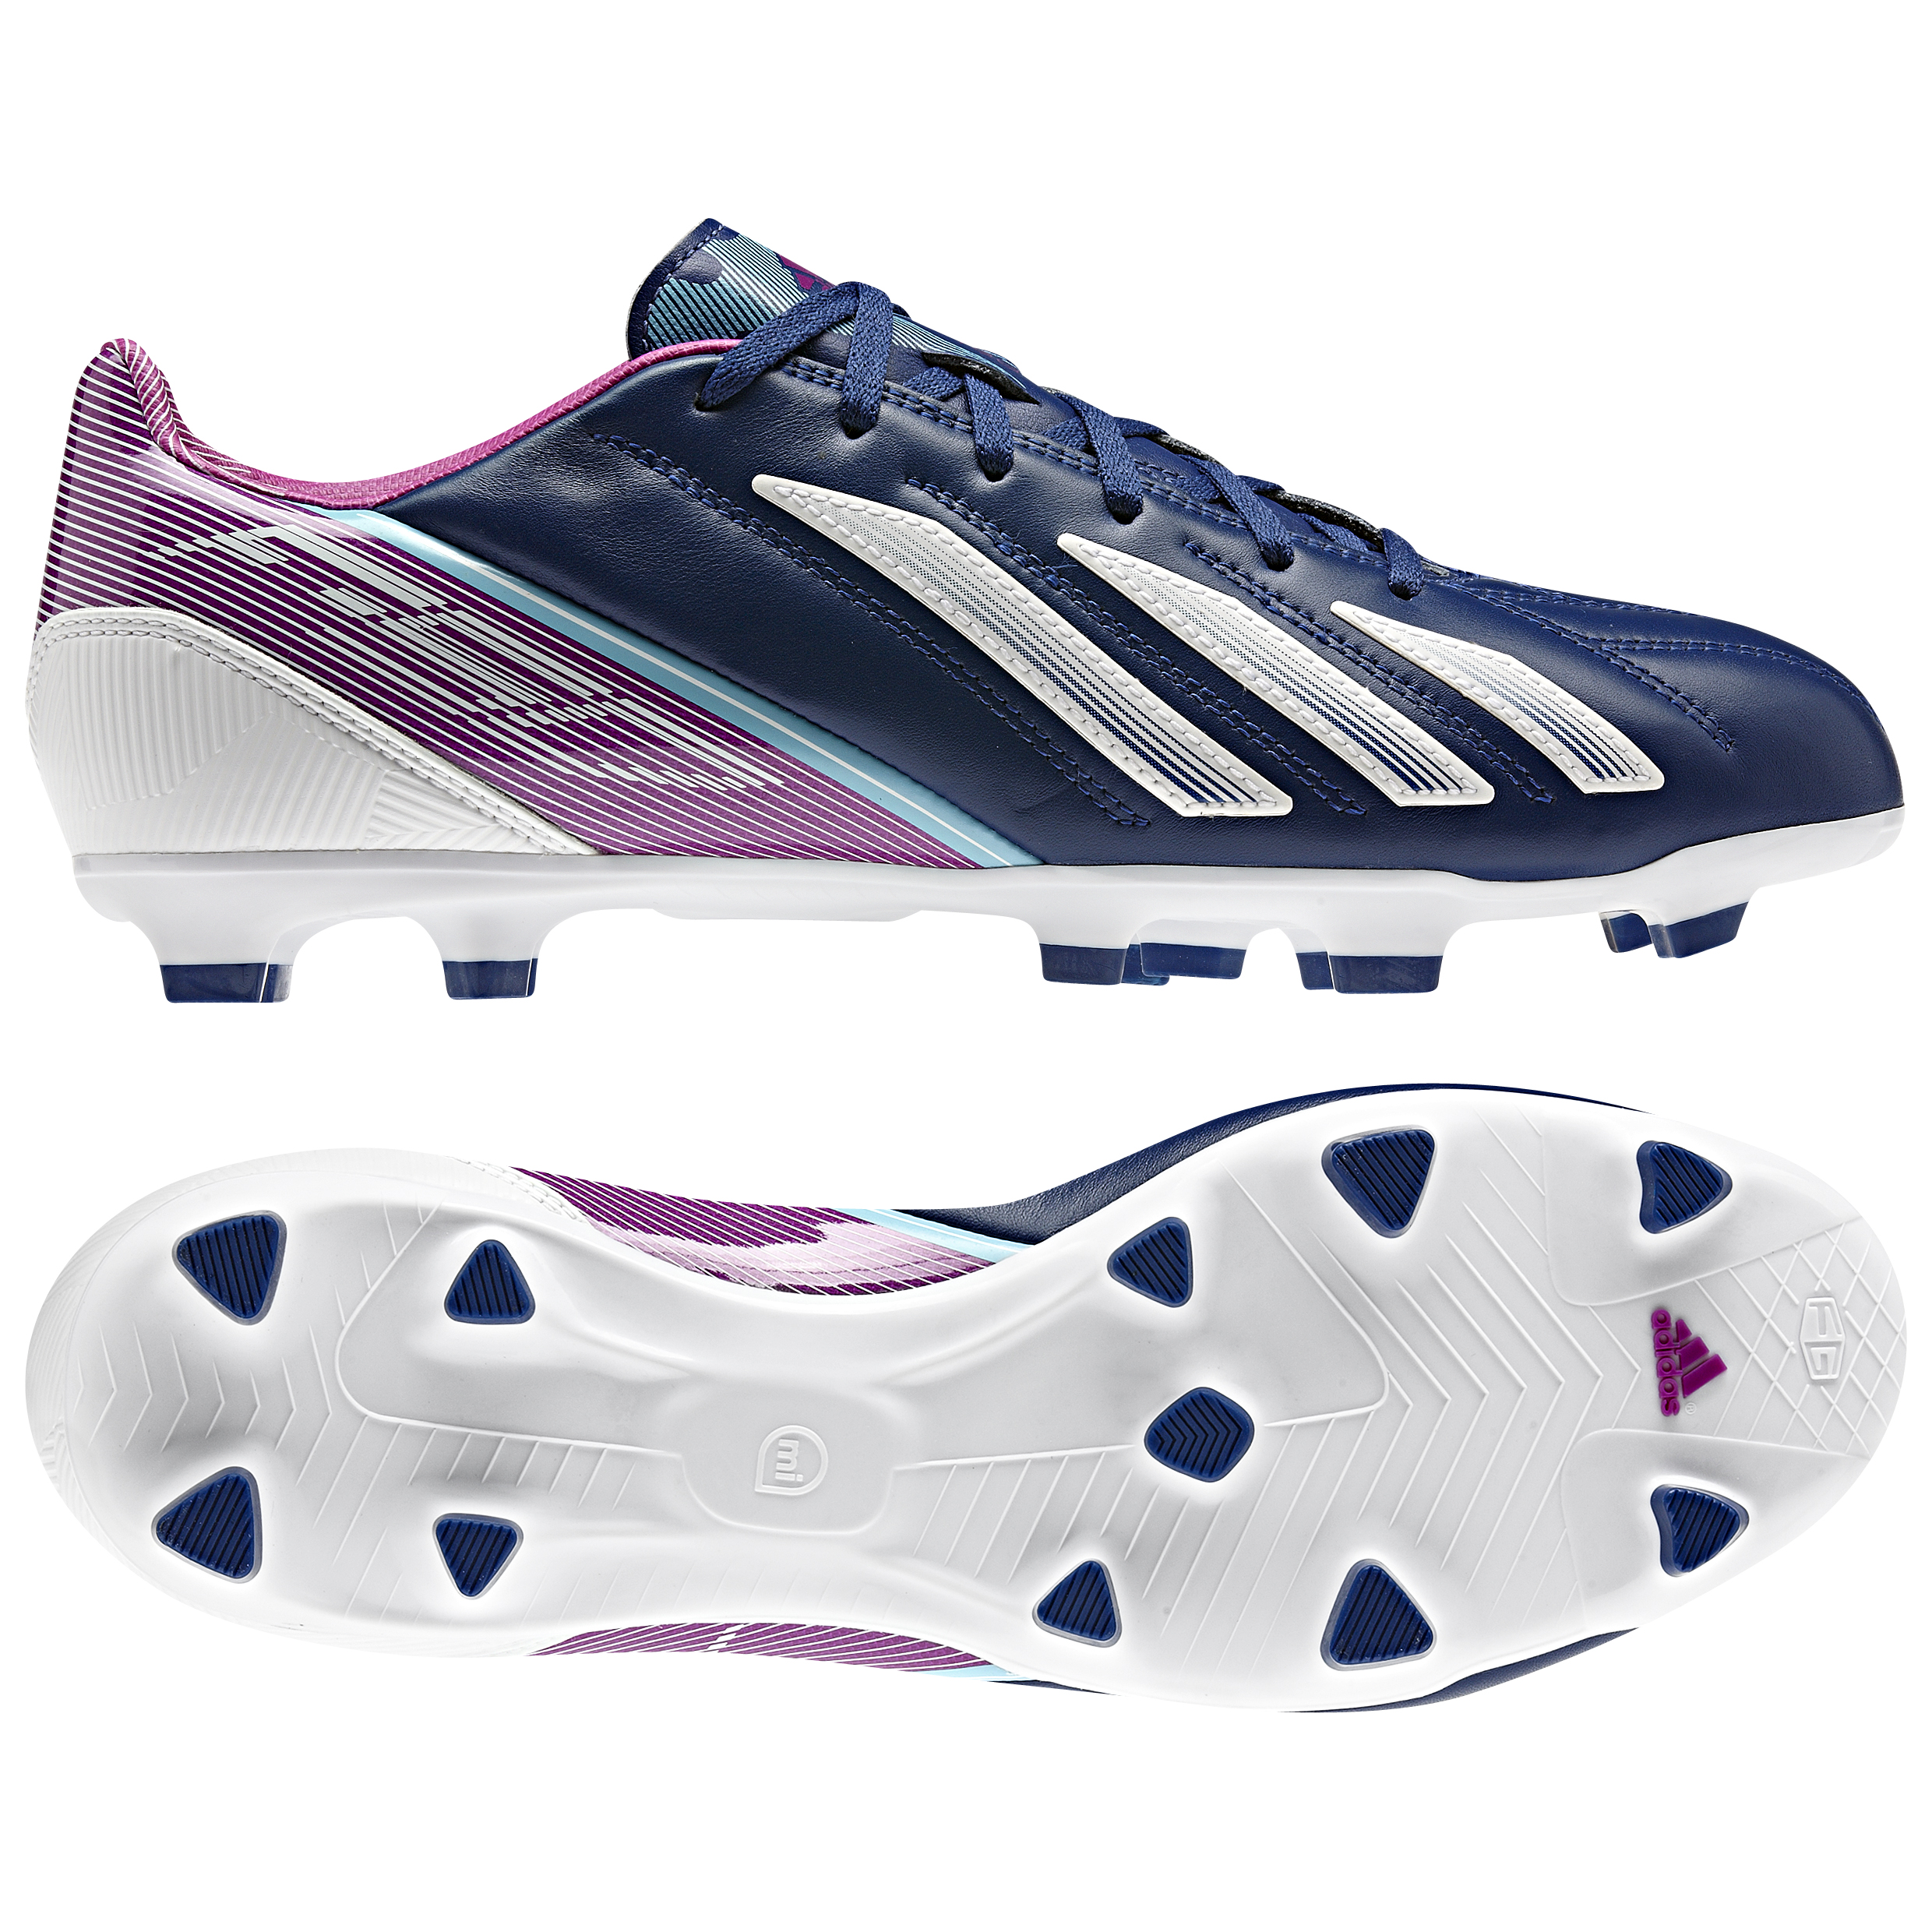 adidas AdiZero F30 TRX Leather Firm Ground Football Boots - Dark Blue/Running White/Vivid Pink